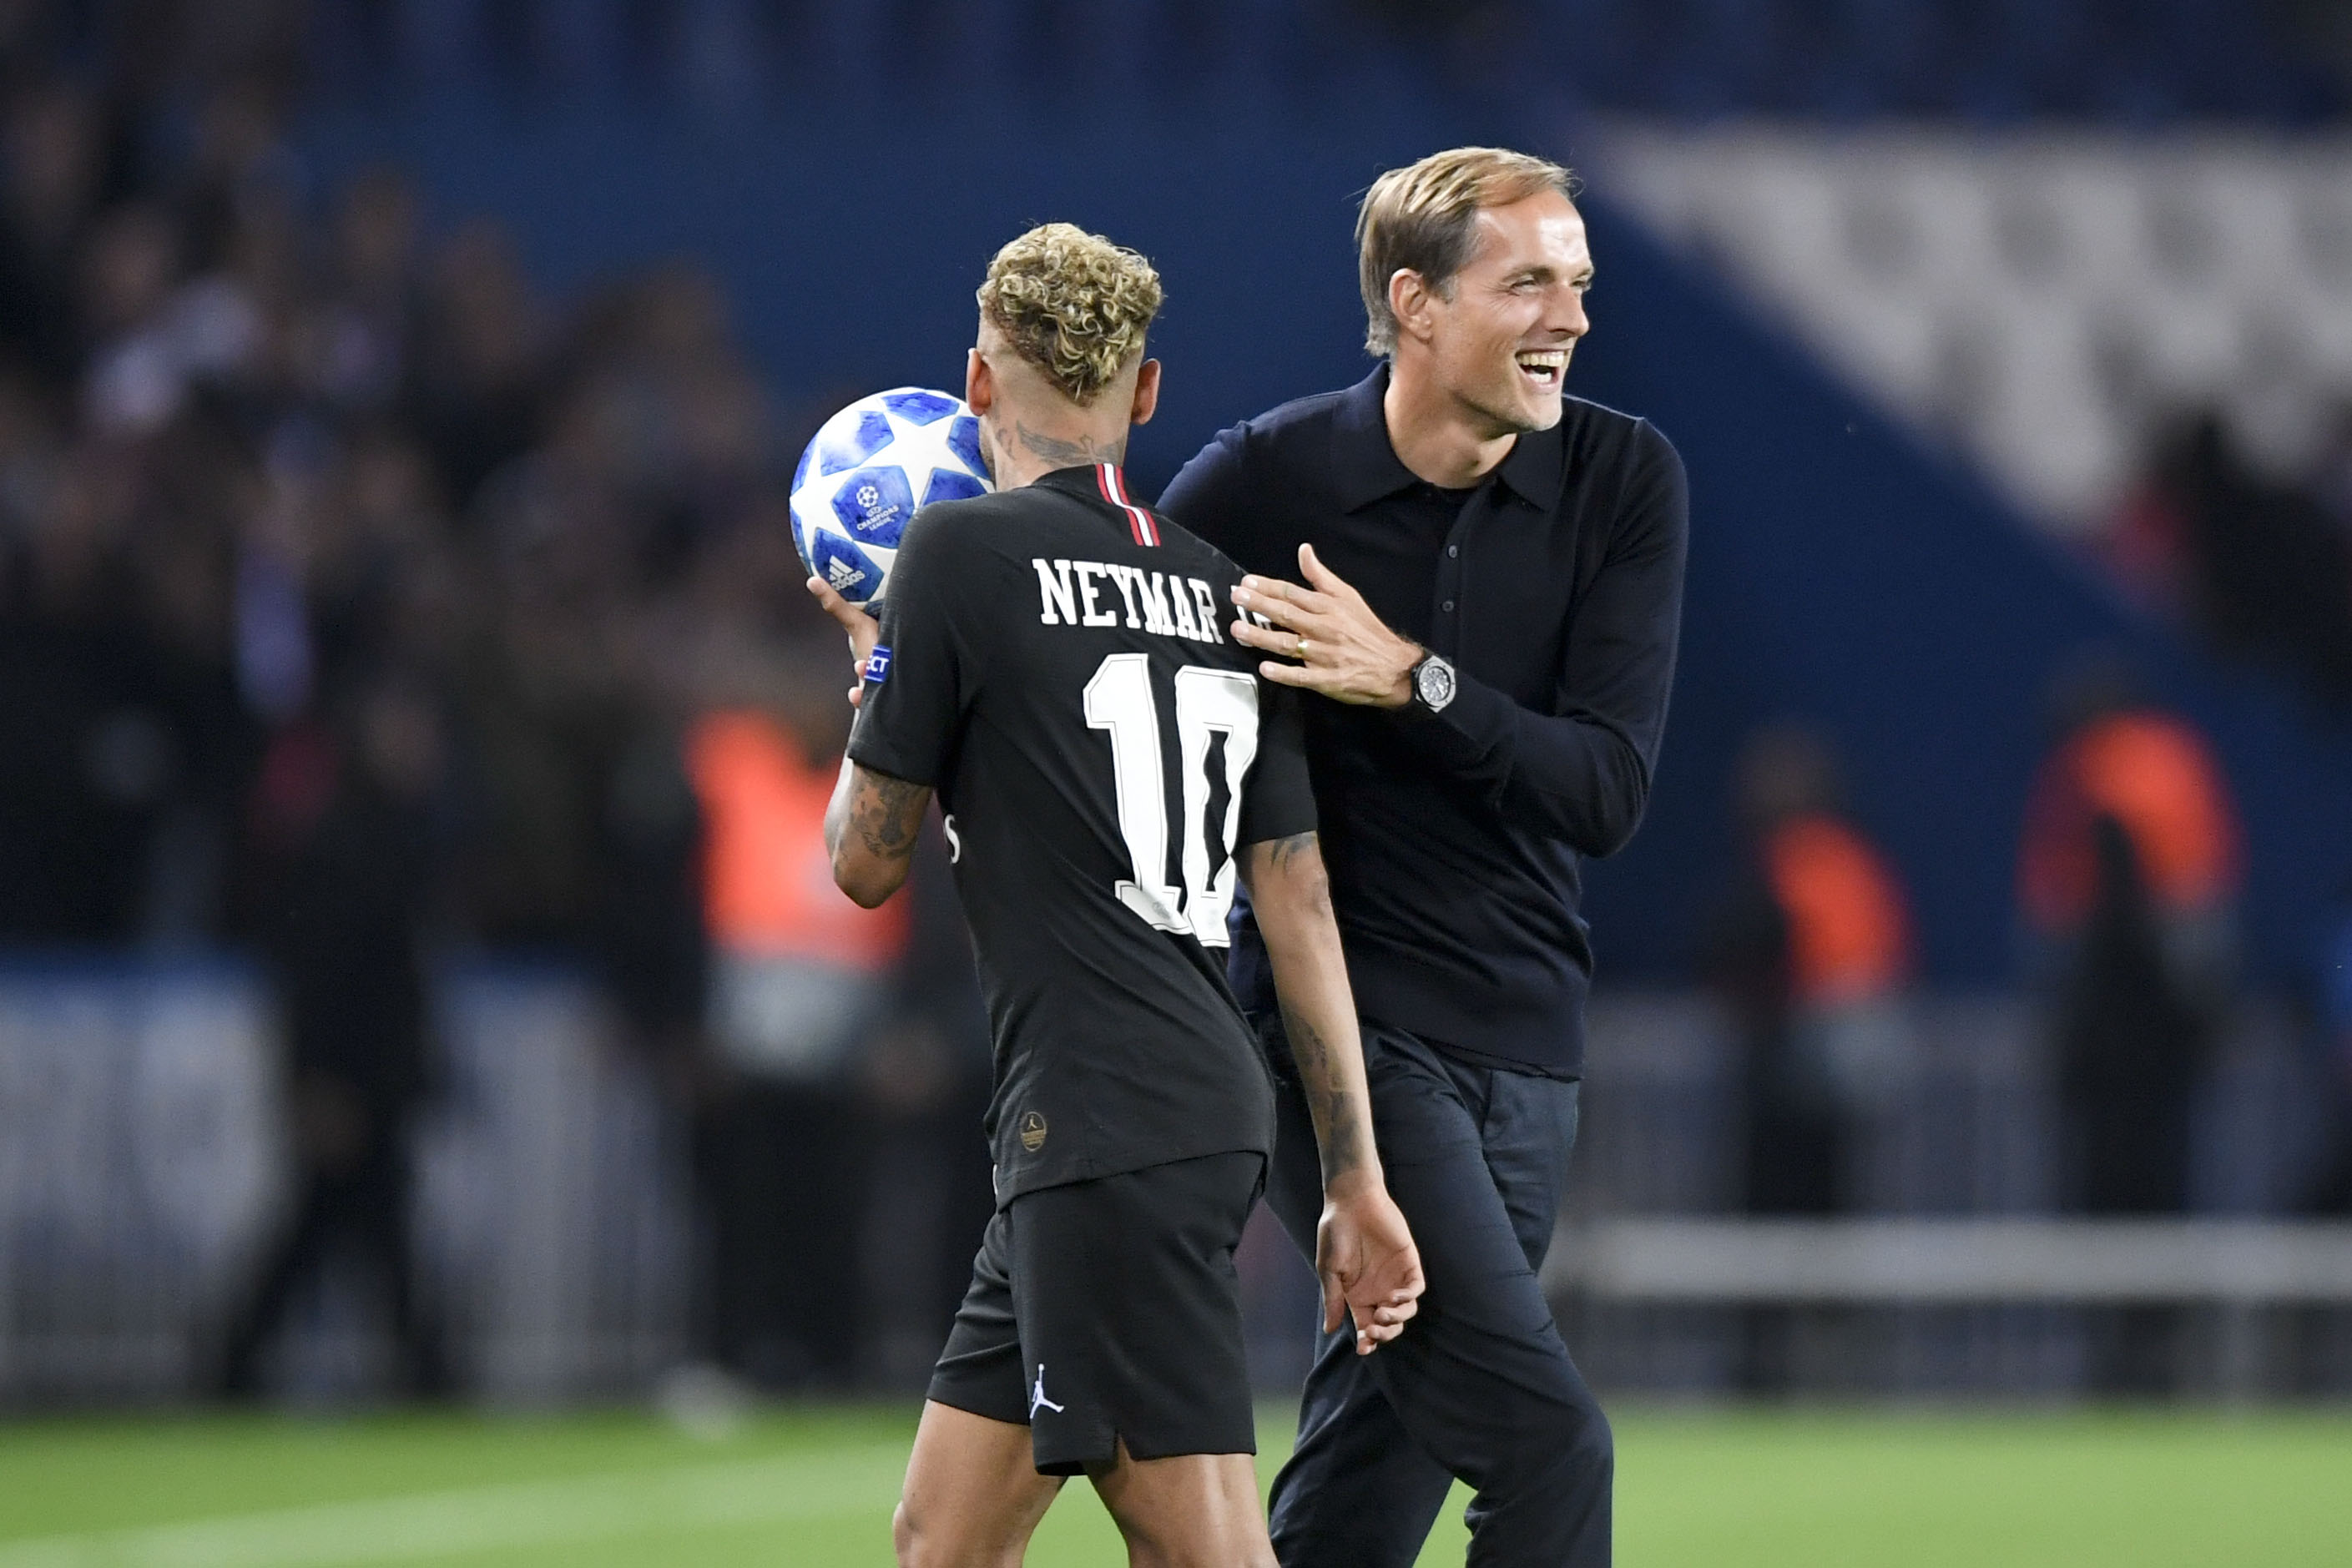 Football - Ligue 1 - Paris SG : Tuchel attend «une réaction» et espère Neymar face à Monaco